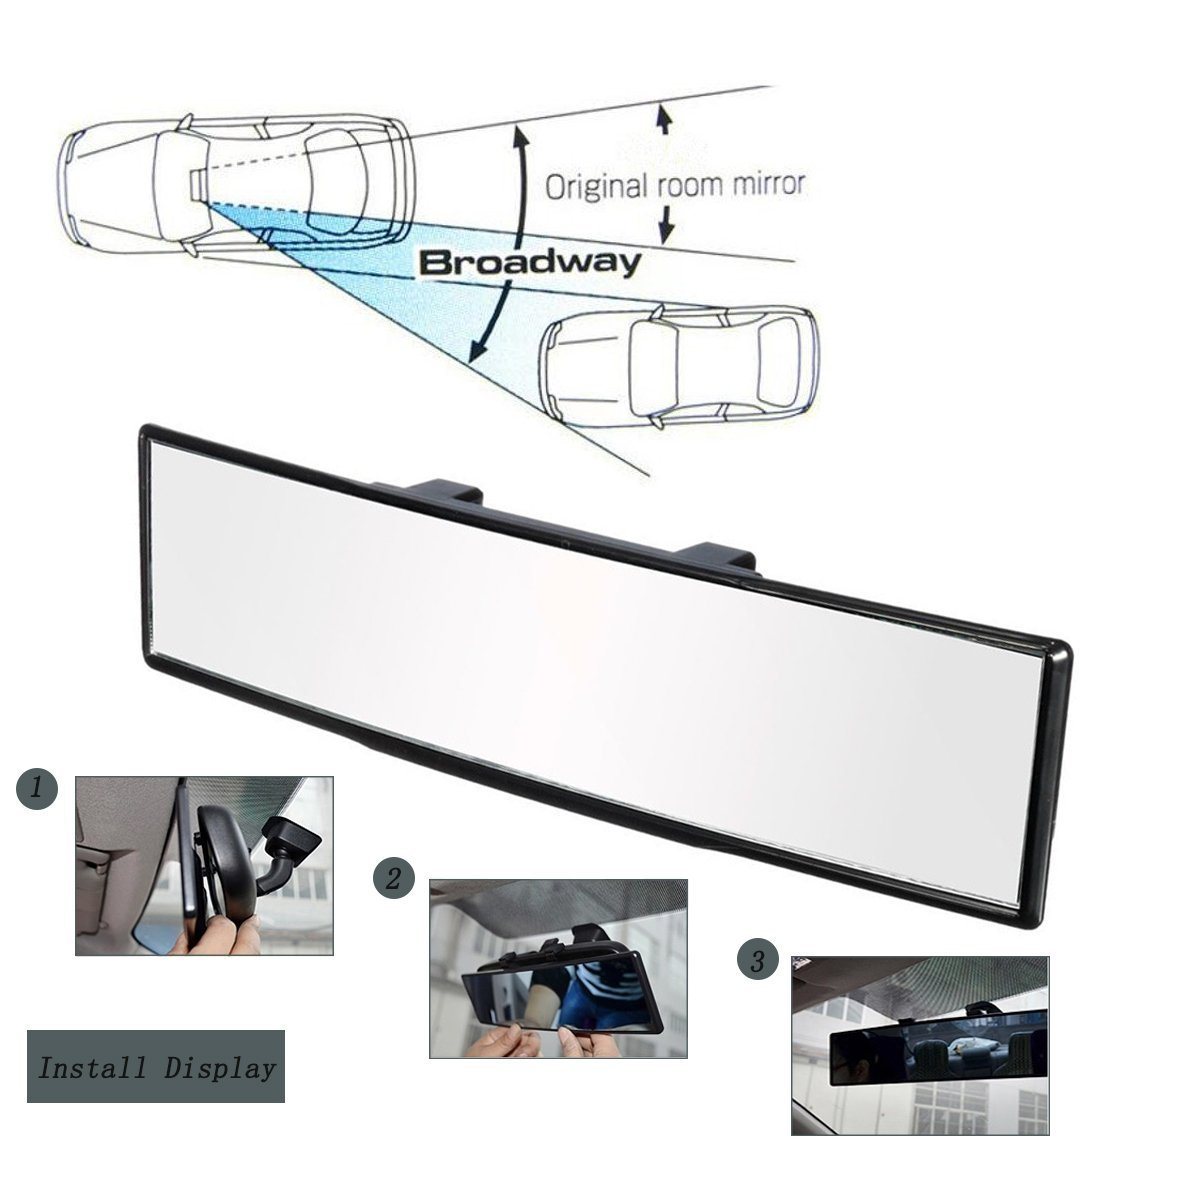 15.2/'/' L x 3.2/'/' H Rear View Mirror Accesories Wide Angle Reducing Blind Spots Dealsplaza Rear View Mirror for Car Universal Fitment 15.2/'/' with Interior Clip On